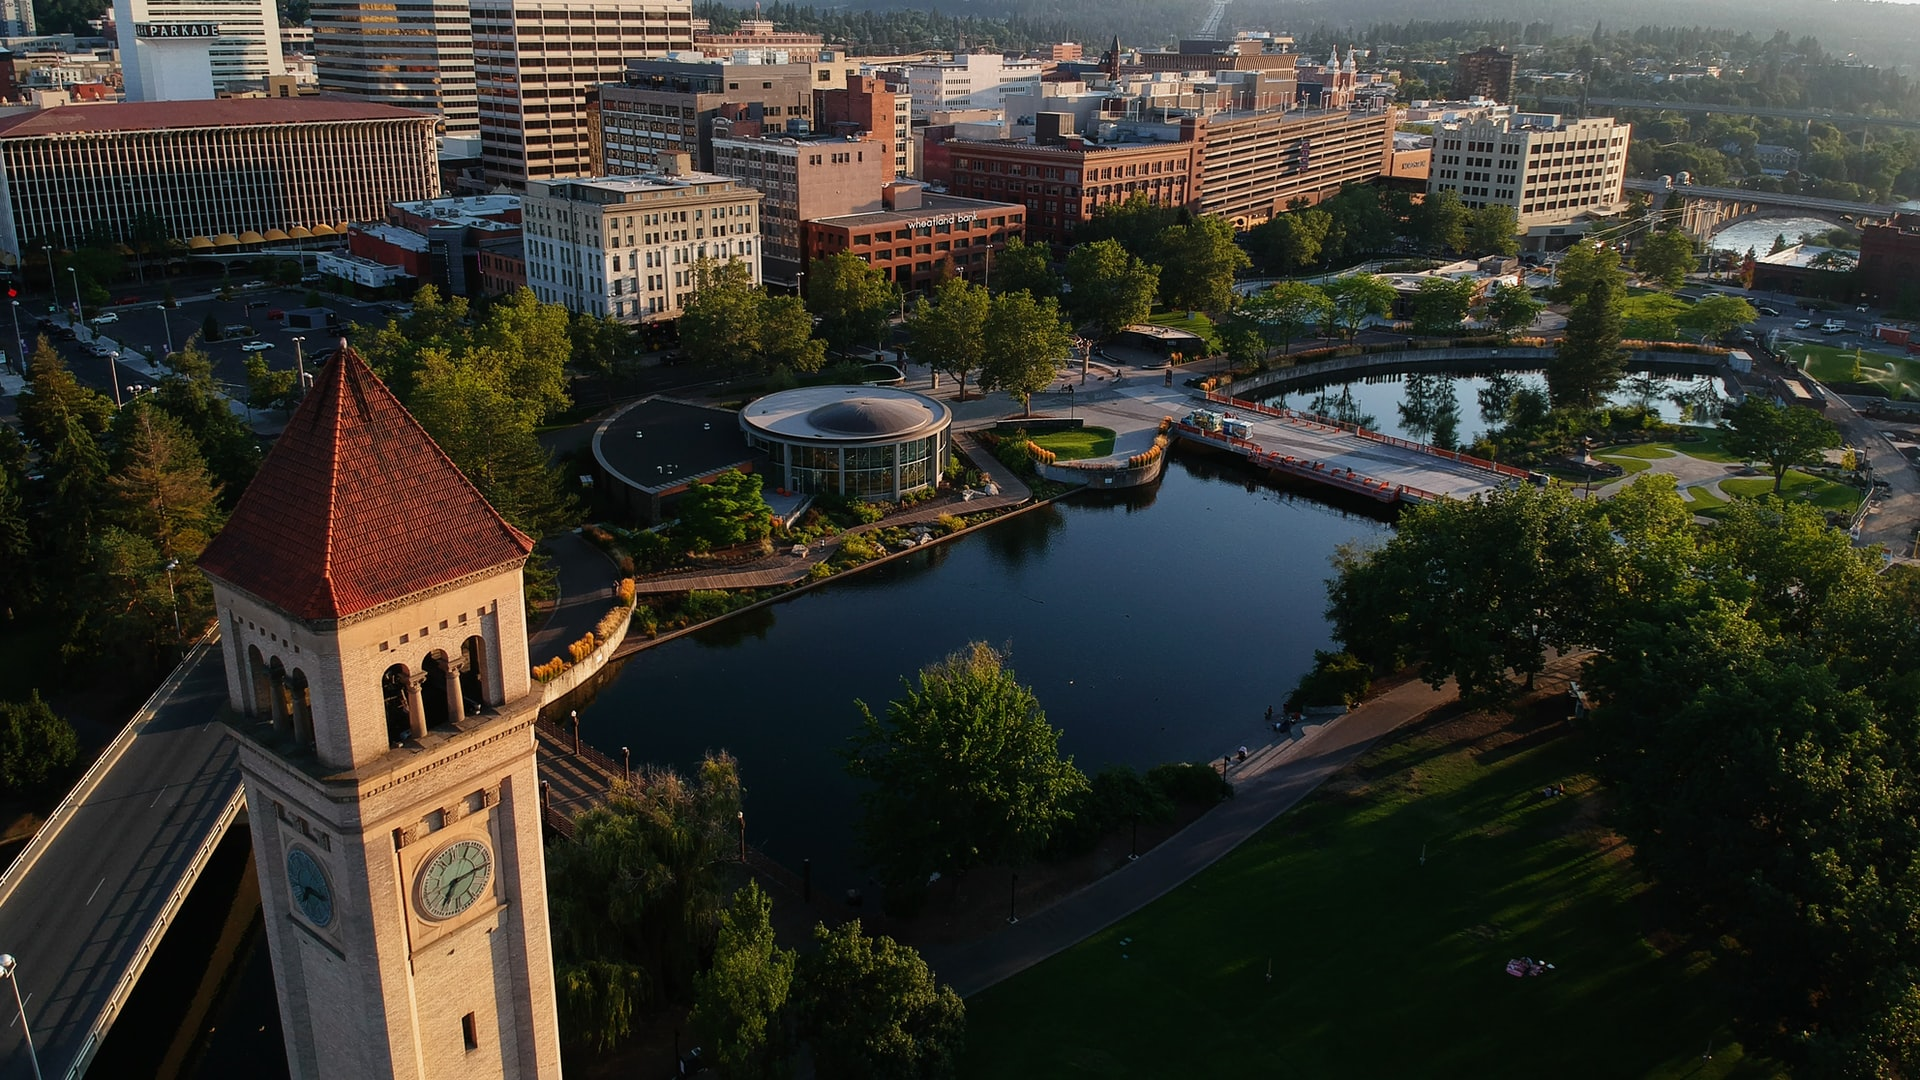 END OF SUMMER EVENTS IN SPOKANE